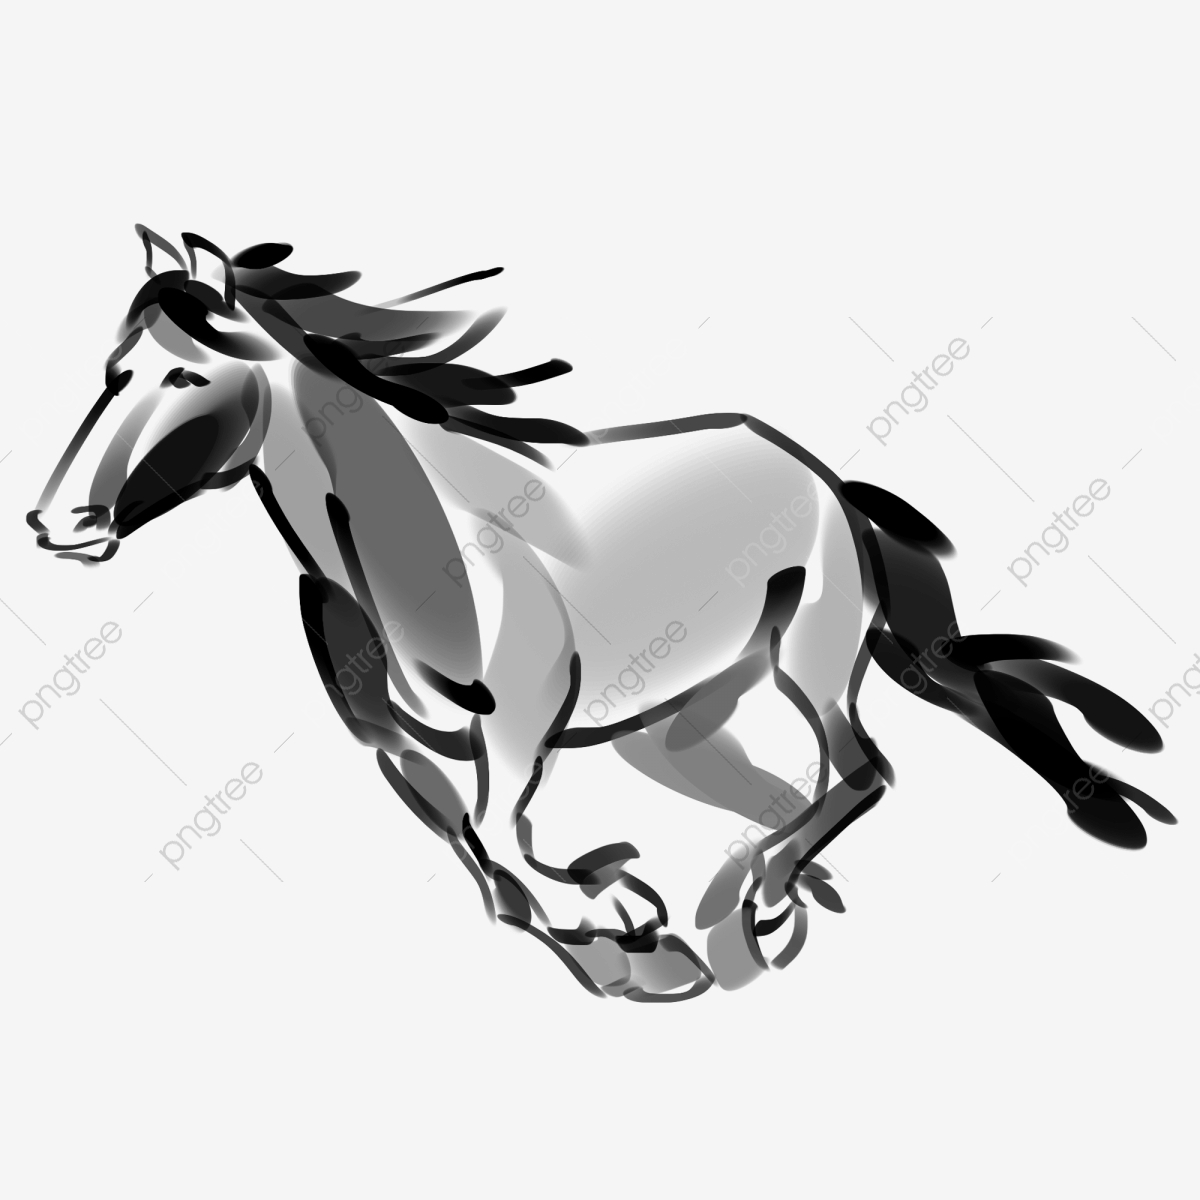 Running Horse Running Horse Illustration Hand Drawn Running Horse Cartoon Running Horse Horse Clipart Black And White Ink Running Horse Running Horse Illustration Png Transparent Clipart Image And Psd File For Free